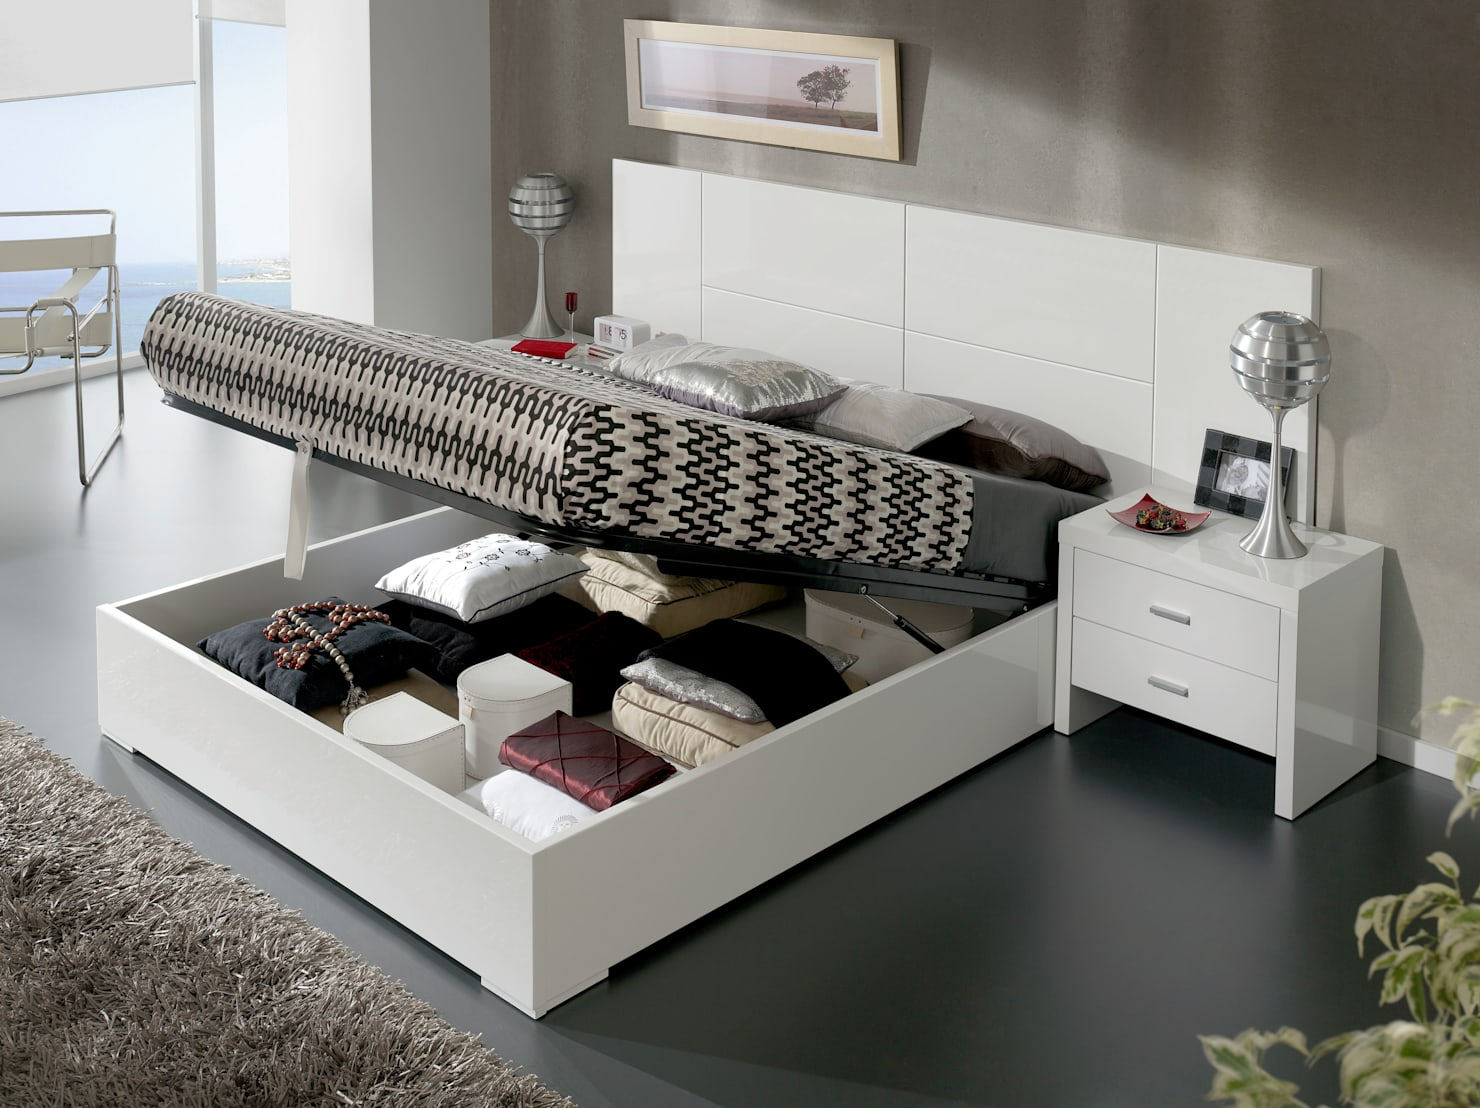 20 brilliant ideas to help keep your home organised